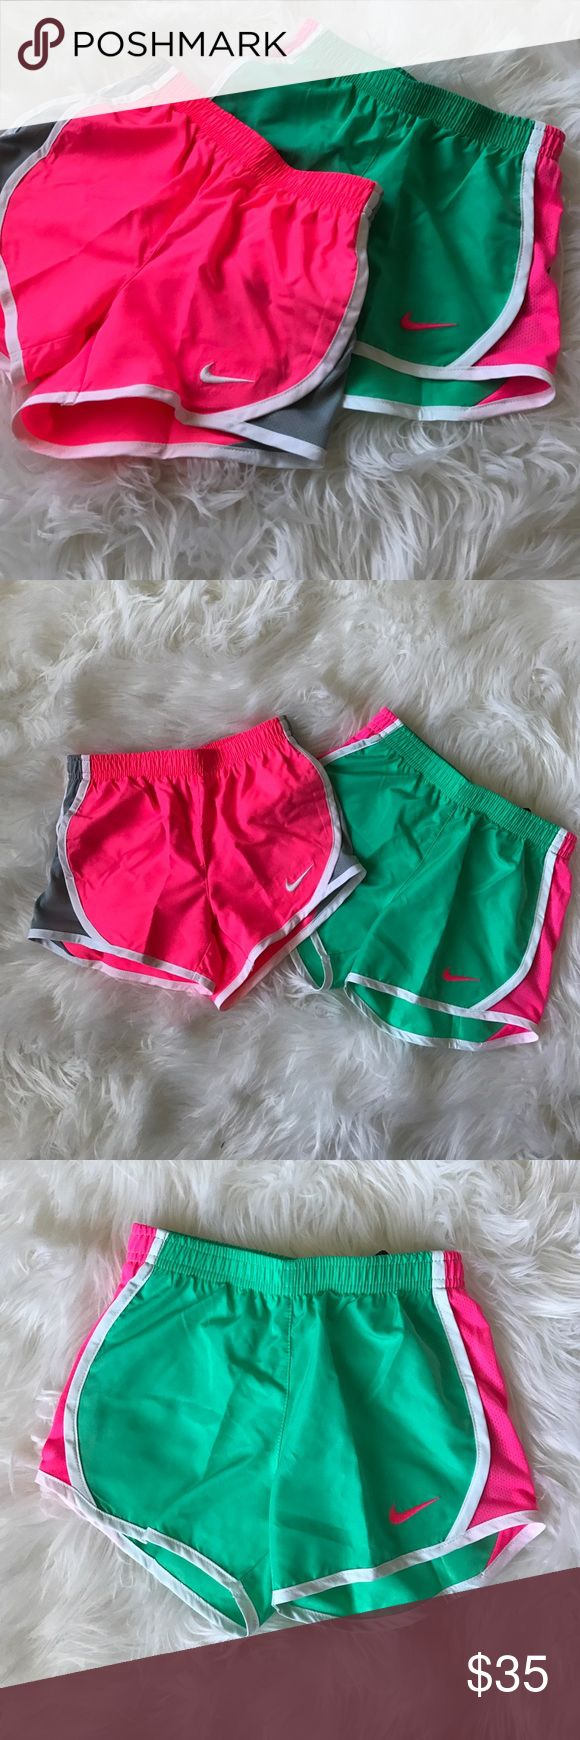 Nike shorts bundle Girls Nike shorts bundle, both have the built in underwear & store tags! Retails for $50 combined Nike Bottoms Shorts